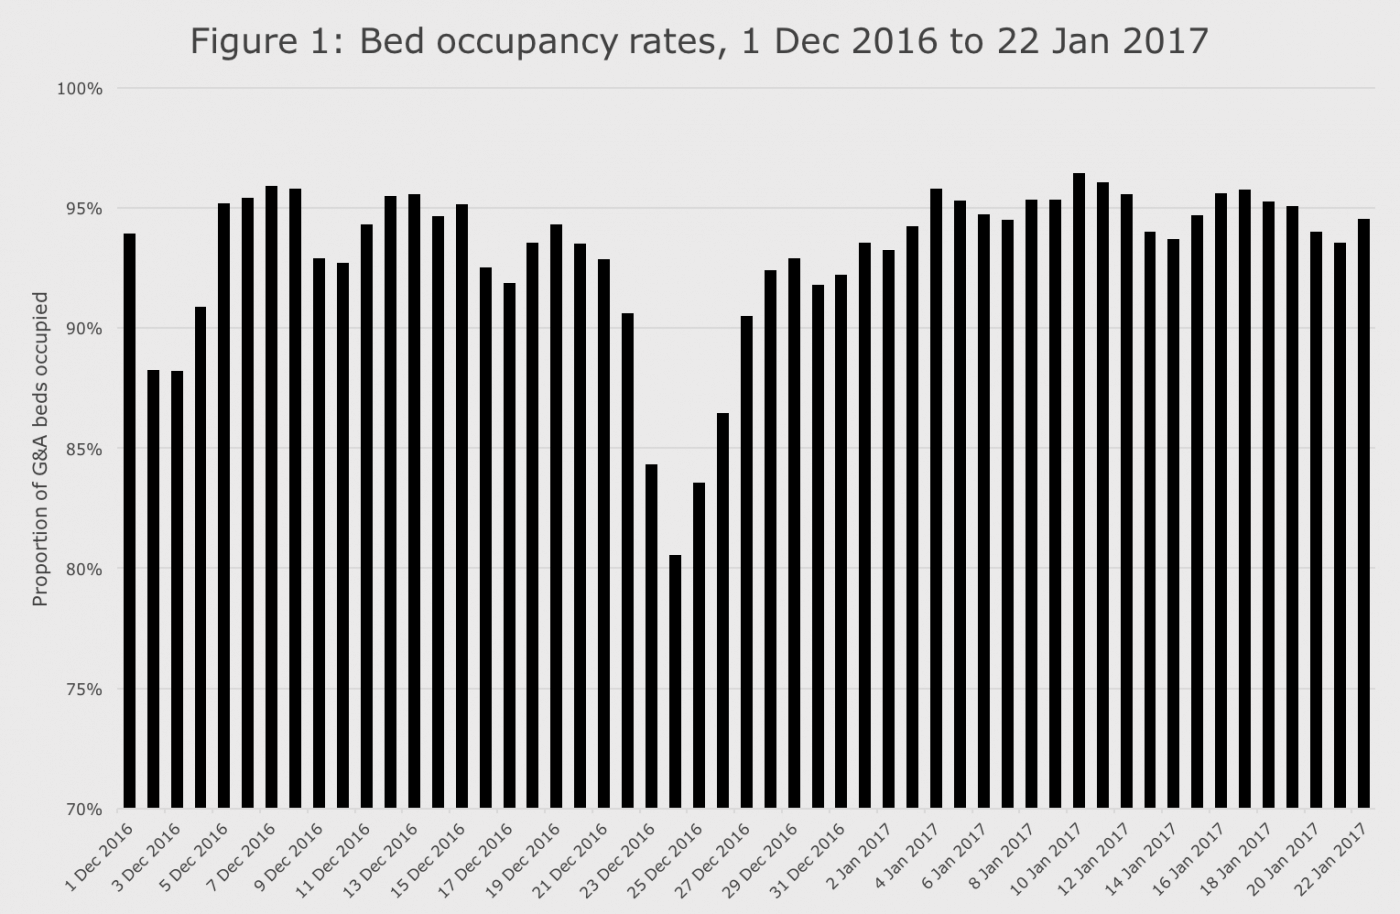 Bed occupancy rates, 1 Dec 2016 to 22 Jan 2017